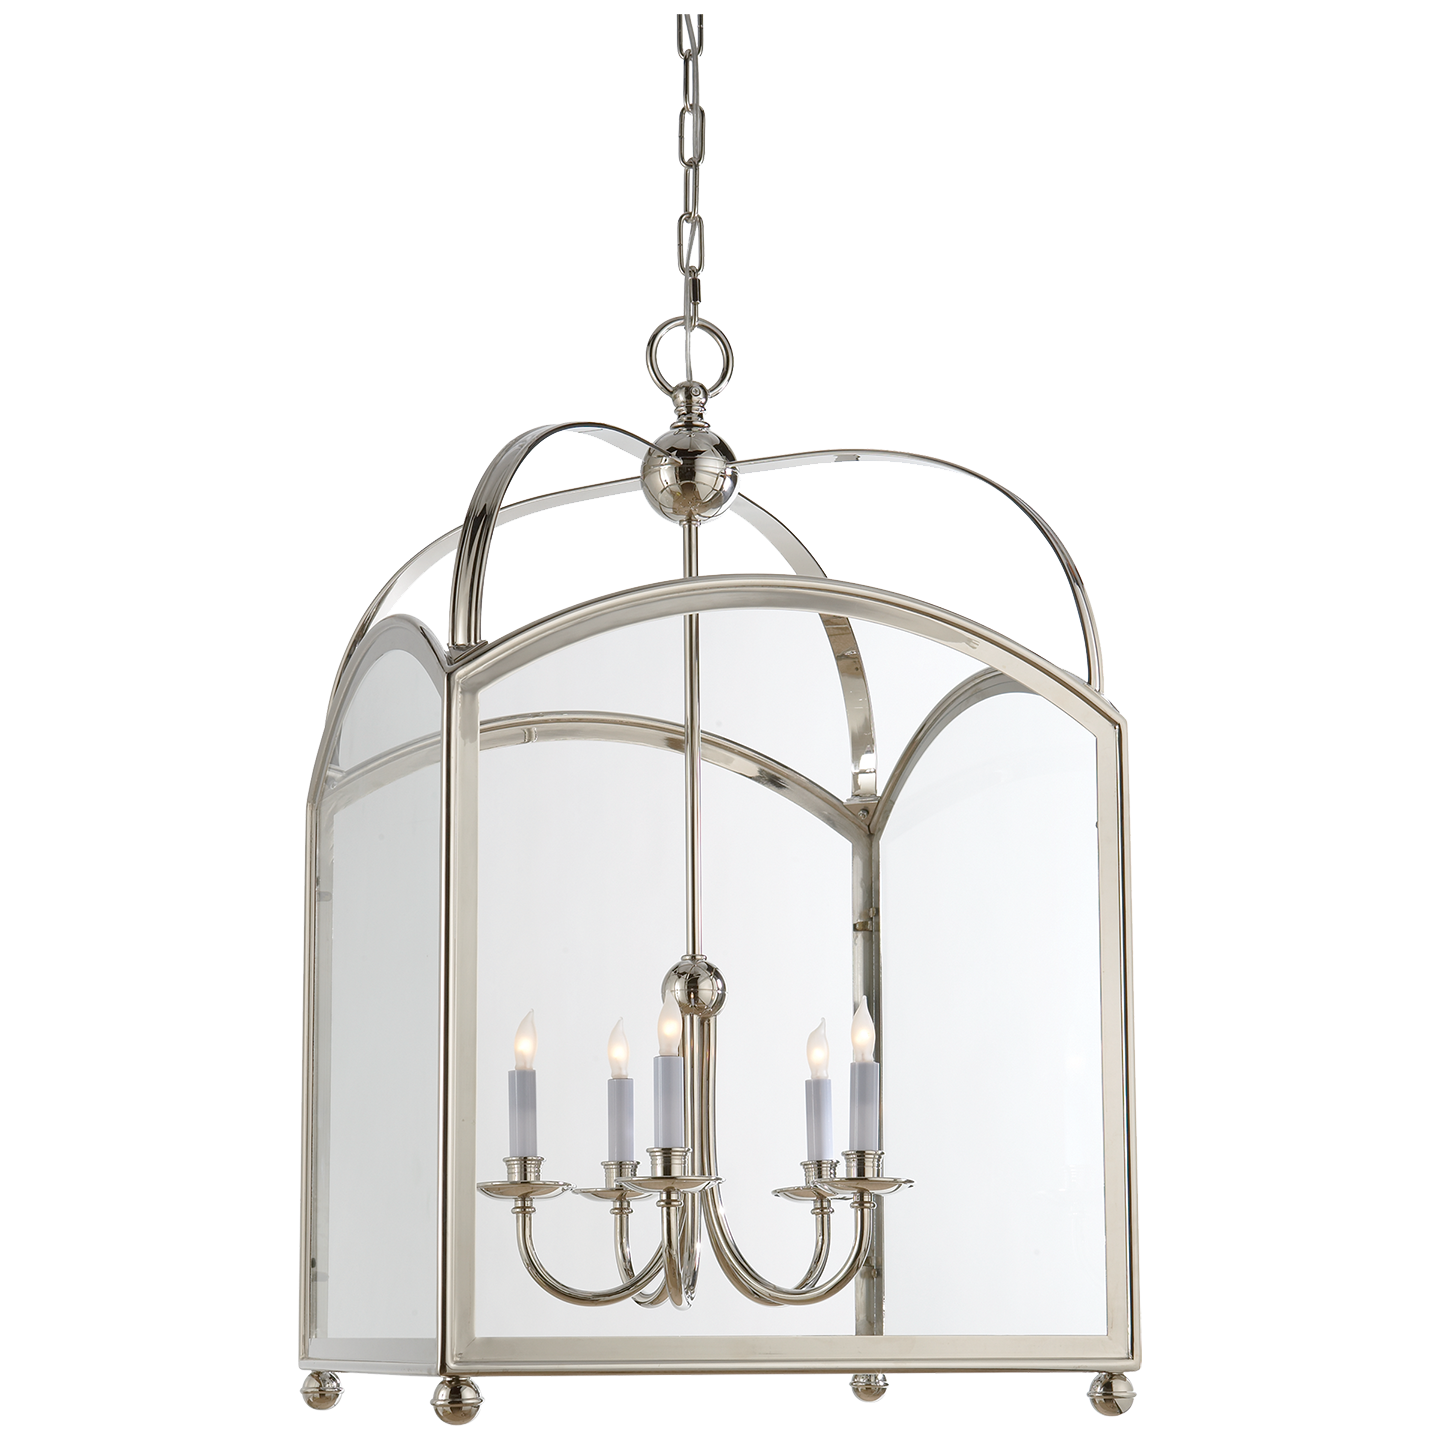 "Arch Top Lantern Height 34 25"" Width 20 25"" Canopy 5 75"